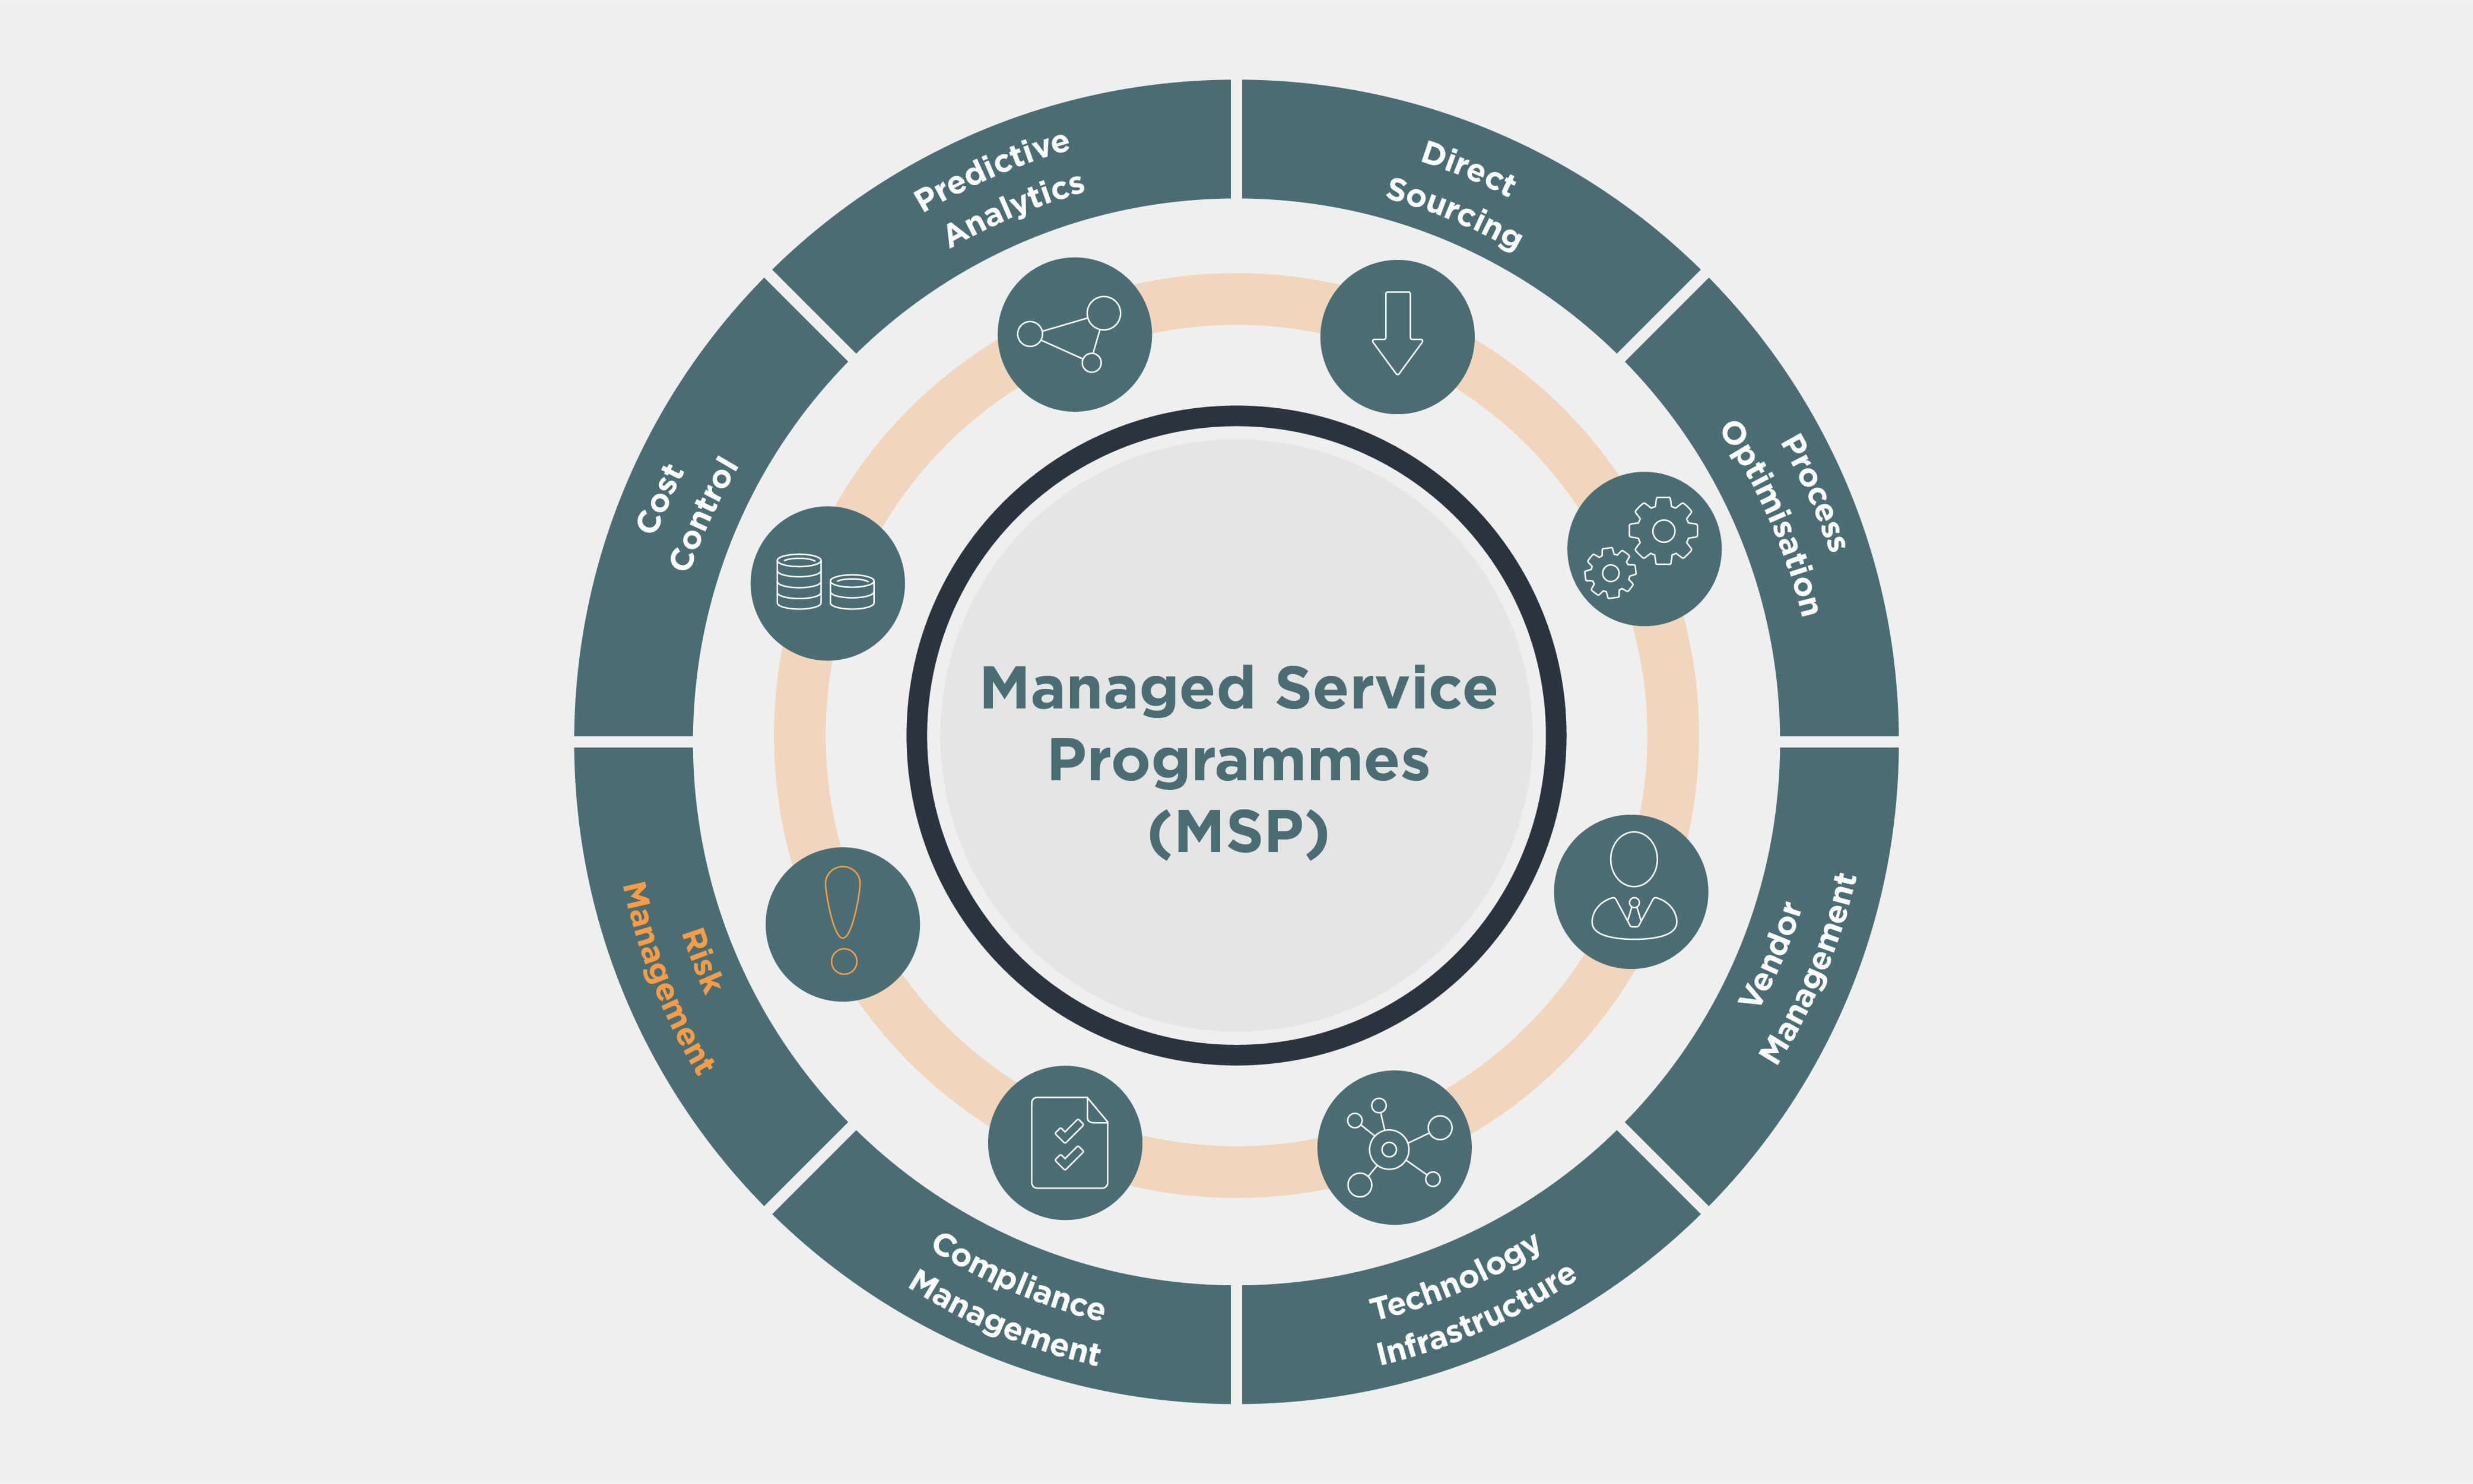 Managed Service Programmes (MSP) wheel with Risk Management highlighted in orange